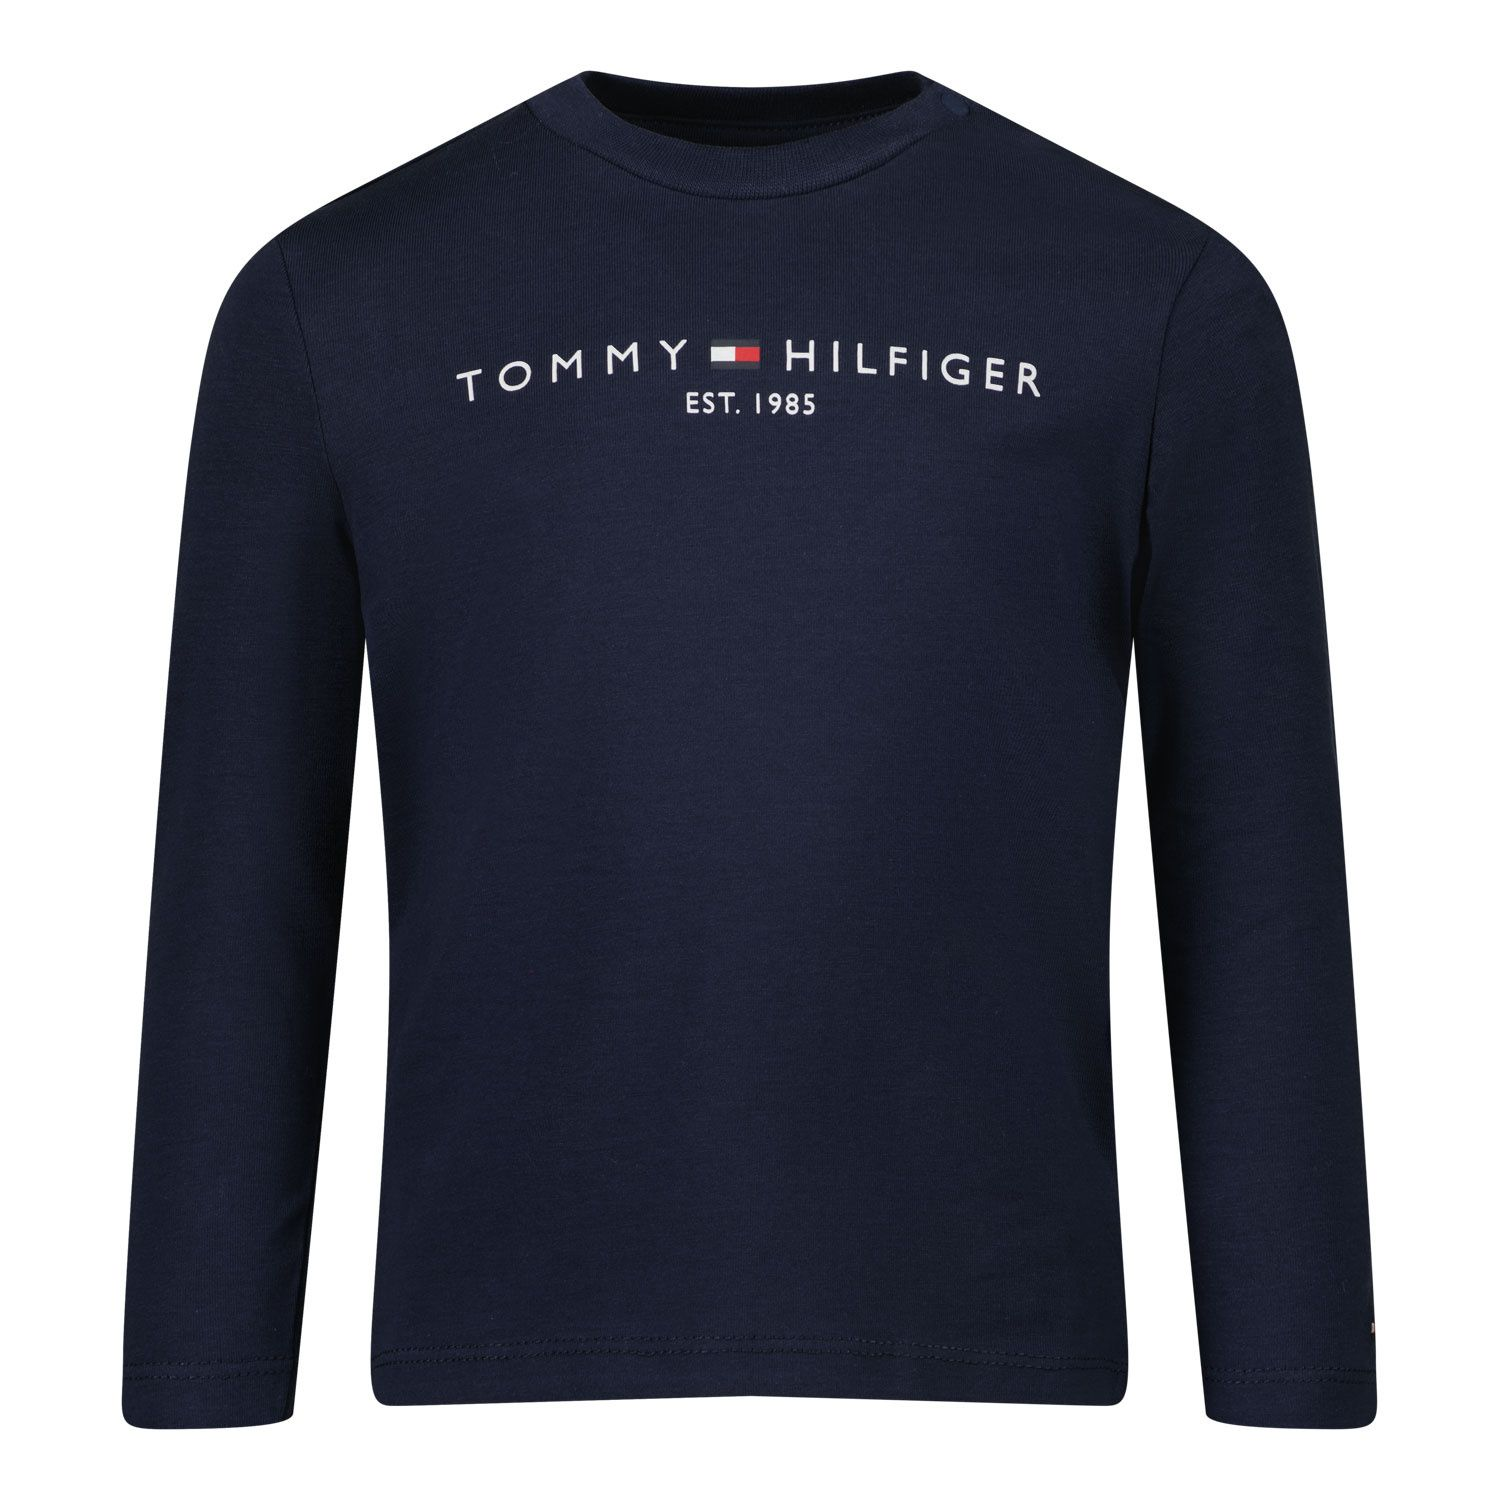 Picture of Tommy Hilfiger KN0KN01249 baby shirt navy